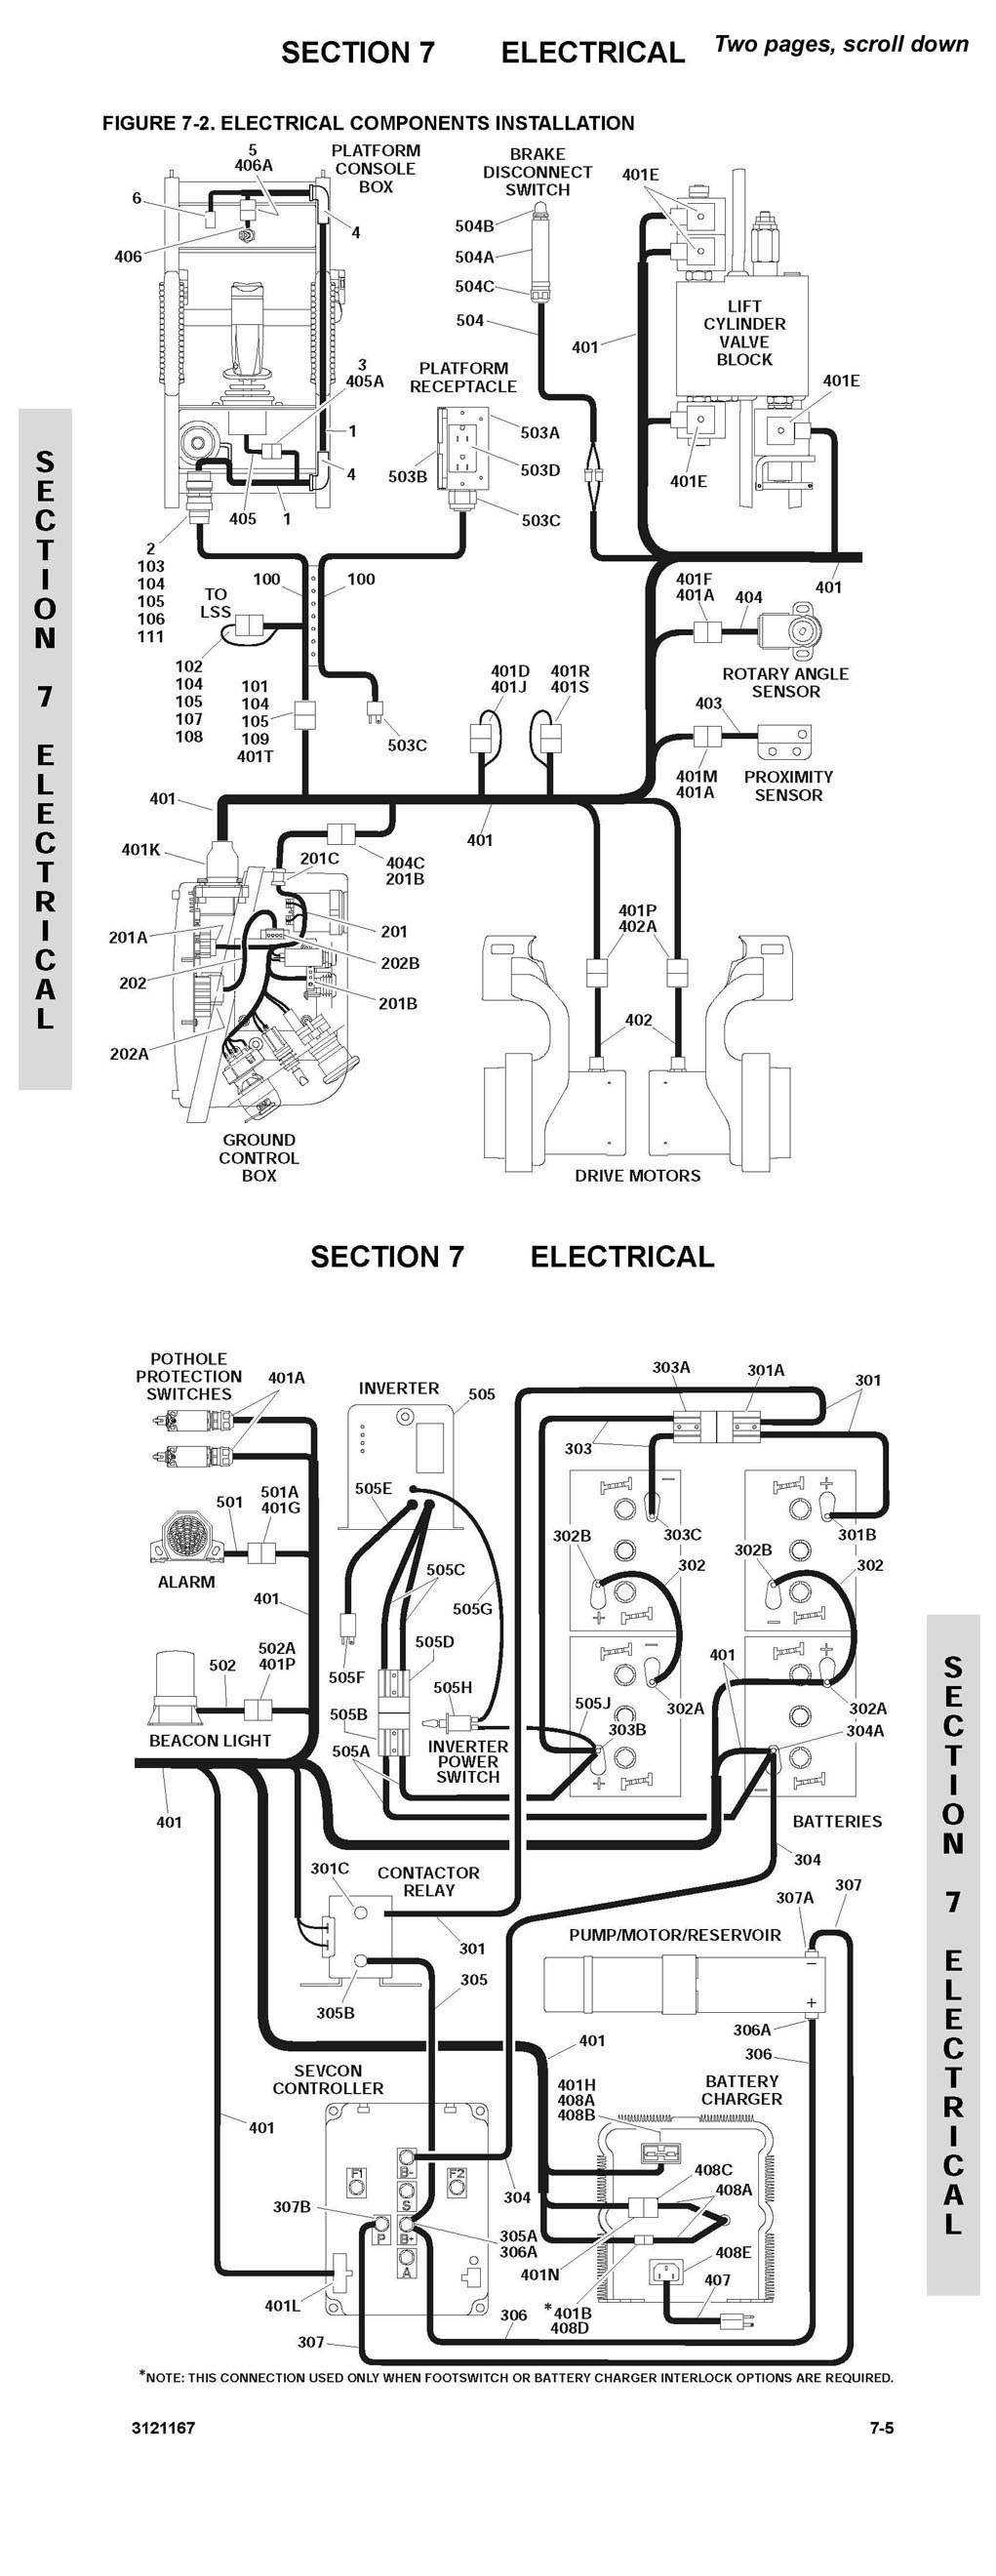 DIAGRAM] Wiring Diagram For Jlg Scissor Lift 1532 FULL Version HD Quality  Lift 1532 - KIA4550WIRING.CONCESSIONARIABELOGISENIGALLIA.ITconcessionariabelogisenigallia.it